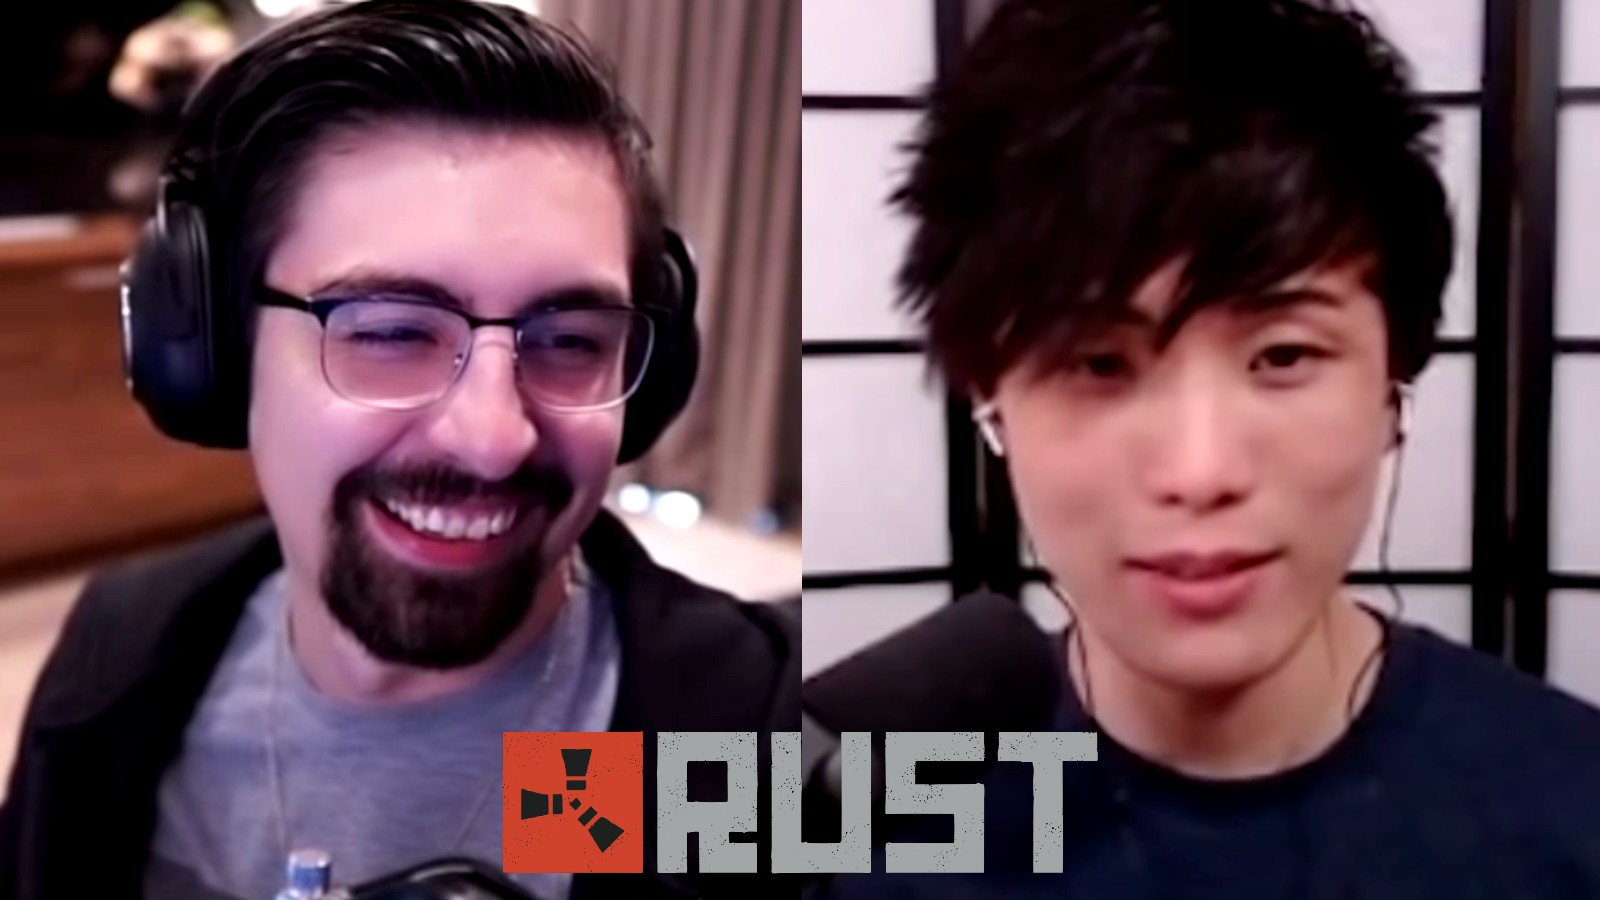 Shroud next to Sykkuno with the Rust logo